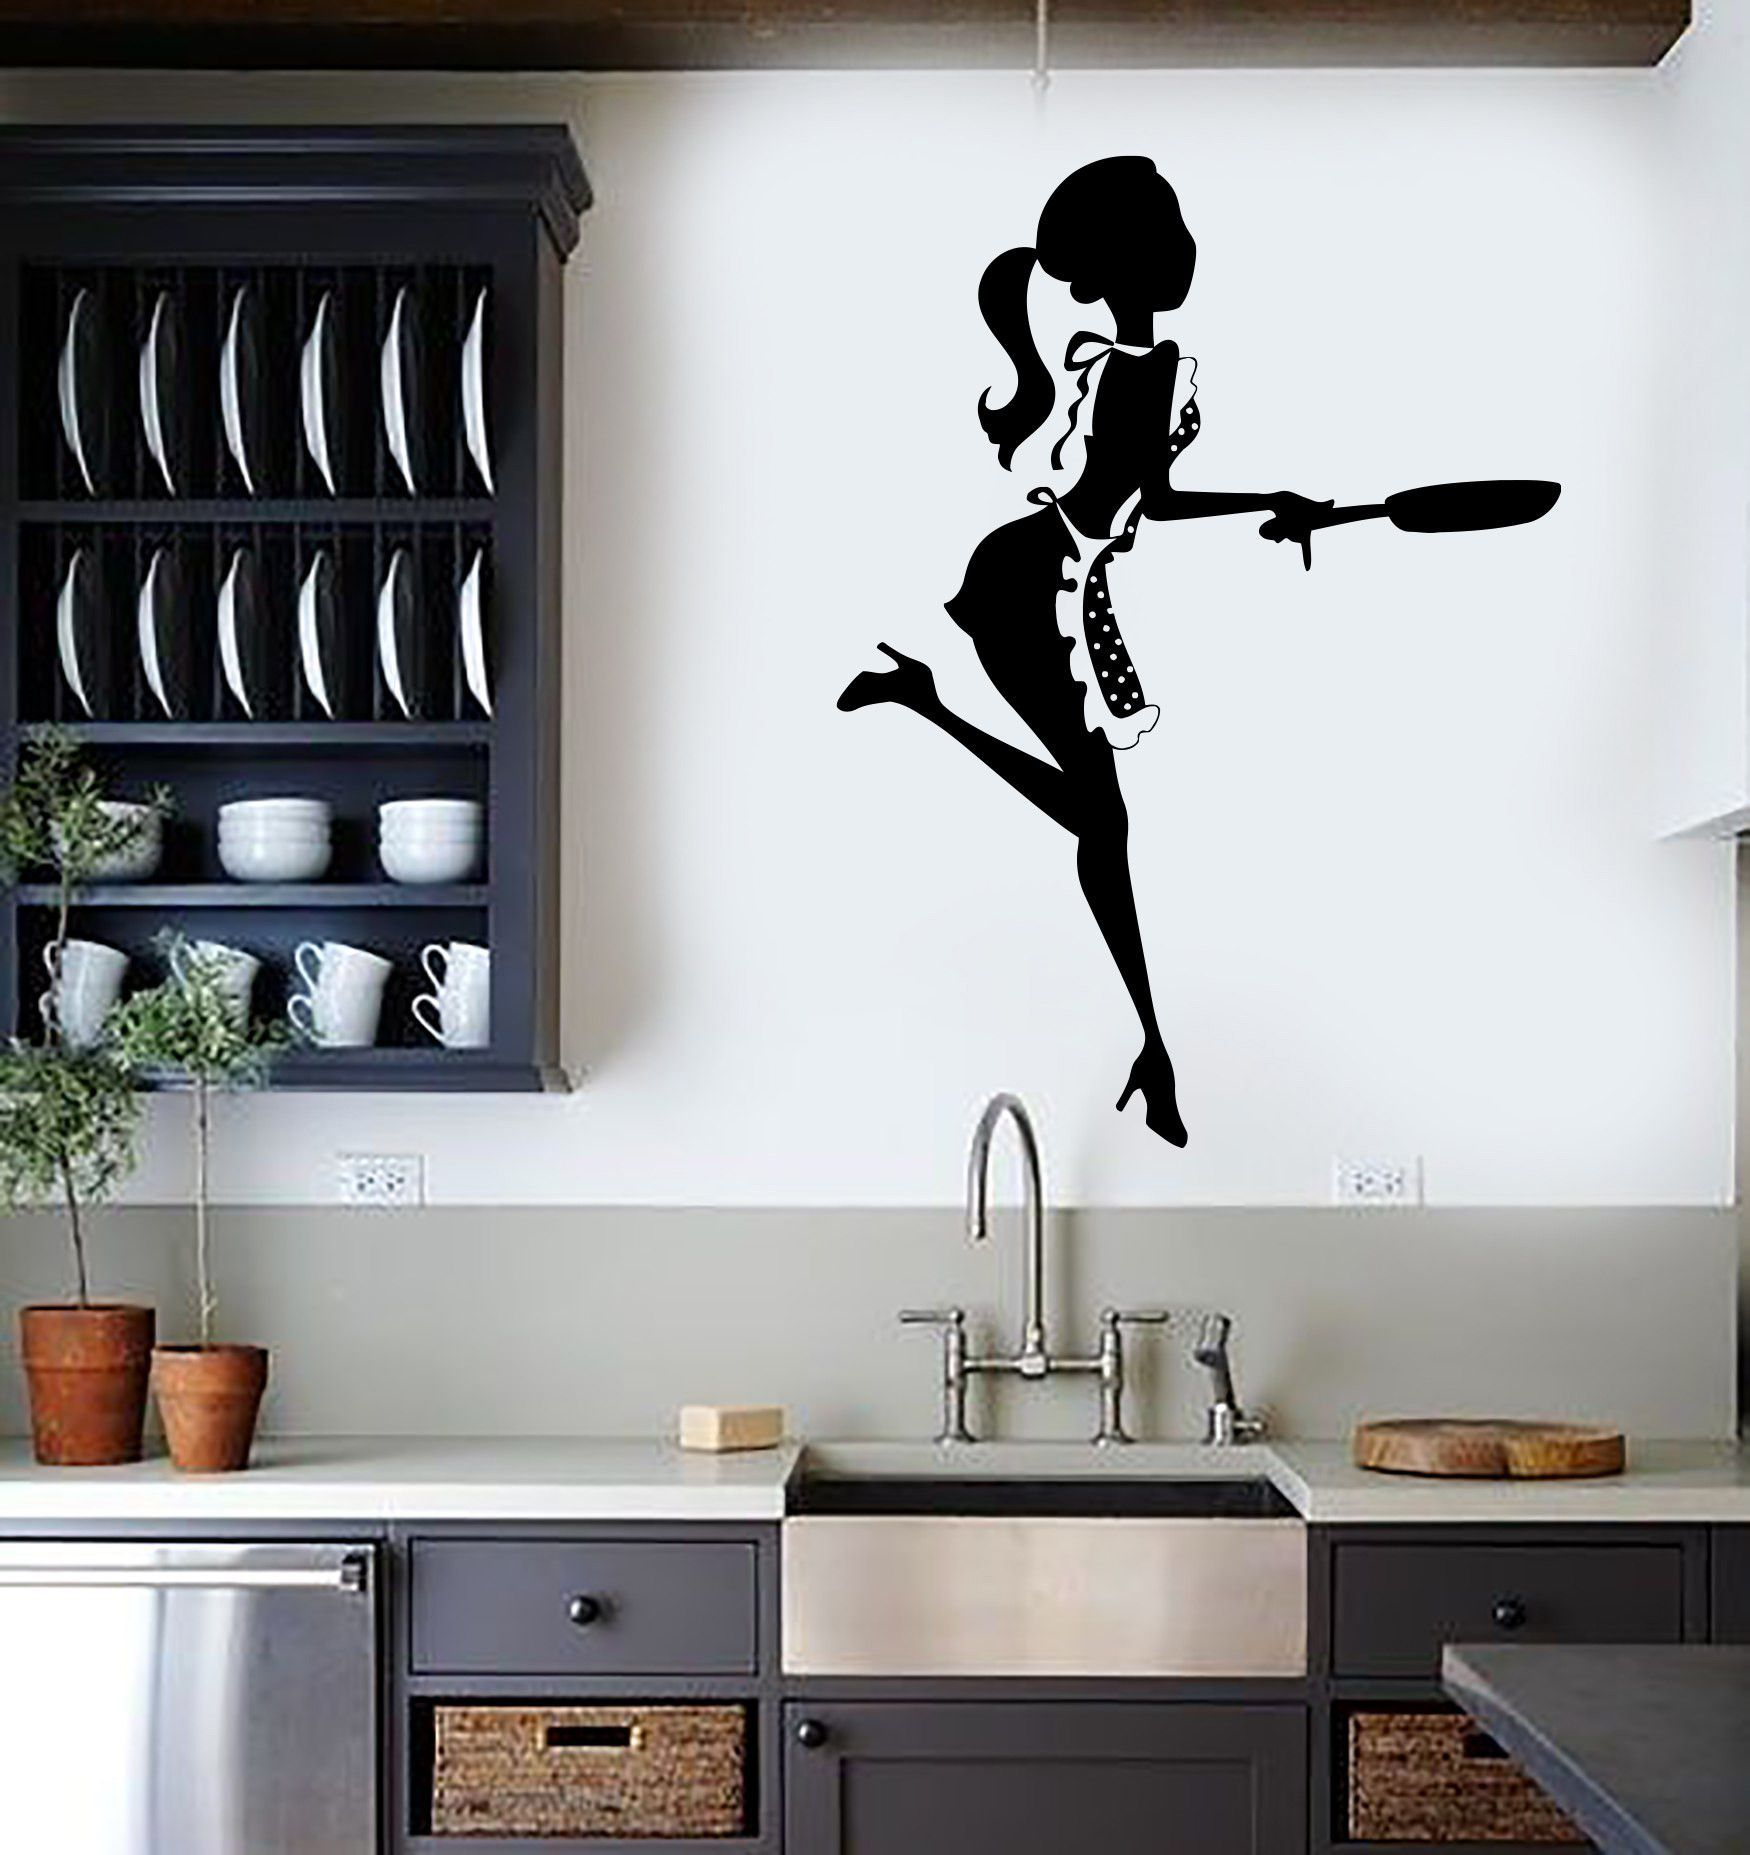 Kitchen Mural Vinyl Wall Stickers Kitchen Chef Woman Cook Cooking Restaurant